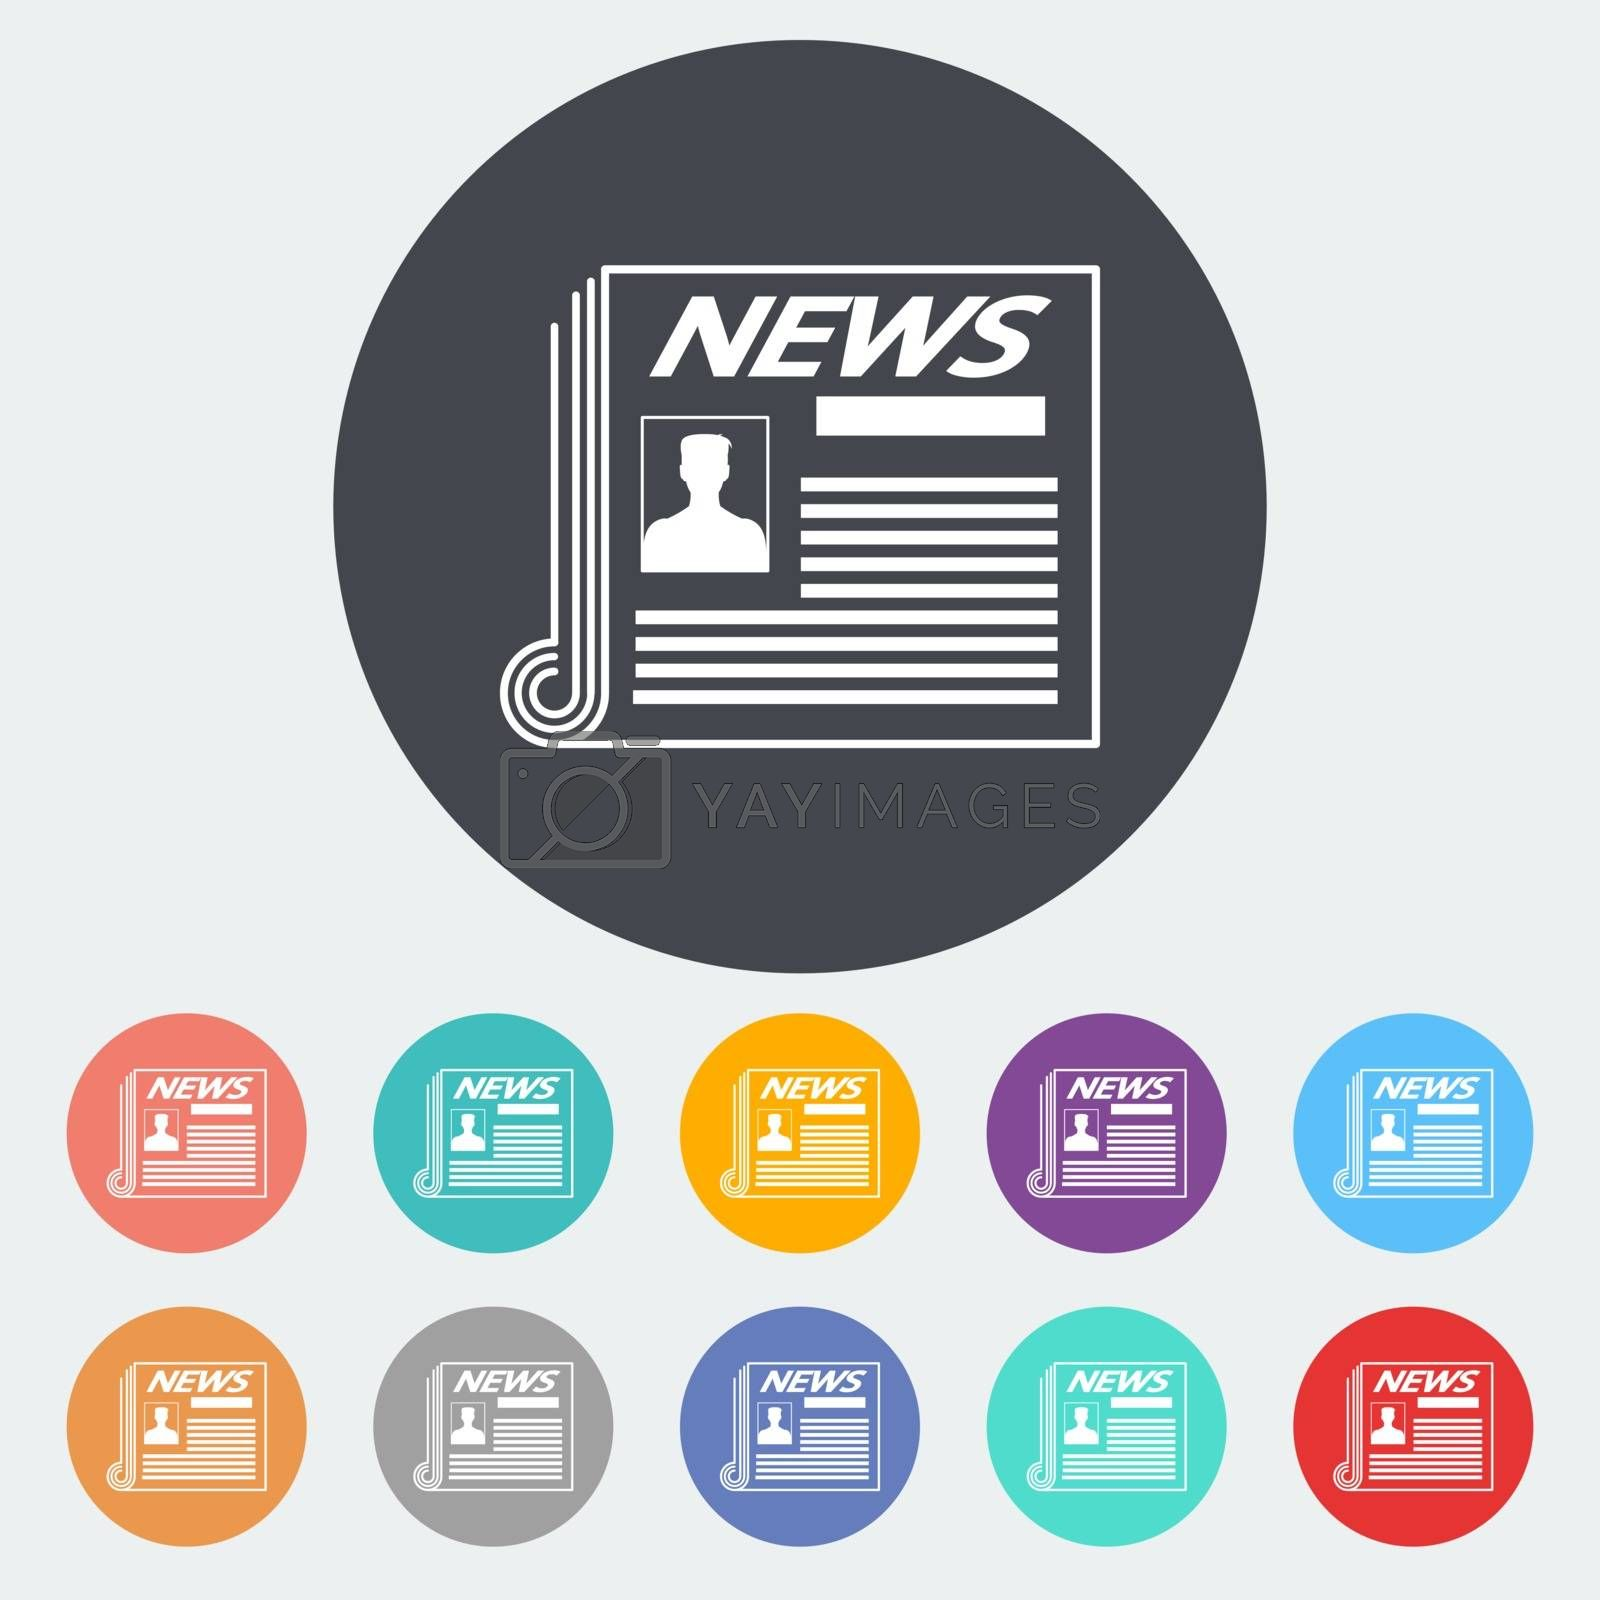 Newspaper. Single flat icon on the circle. Vector illustration.